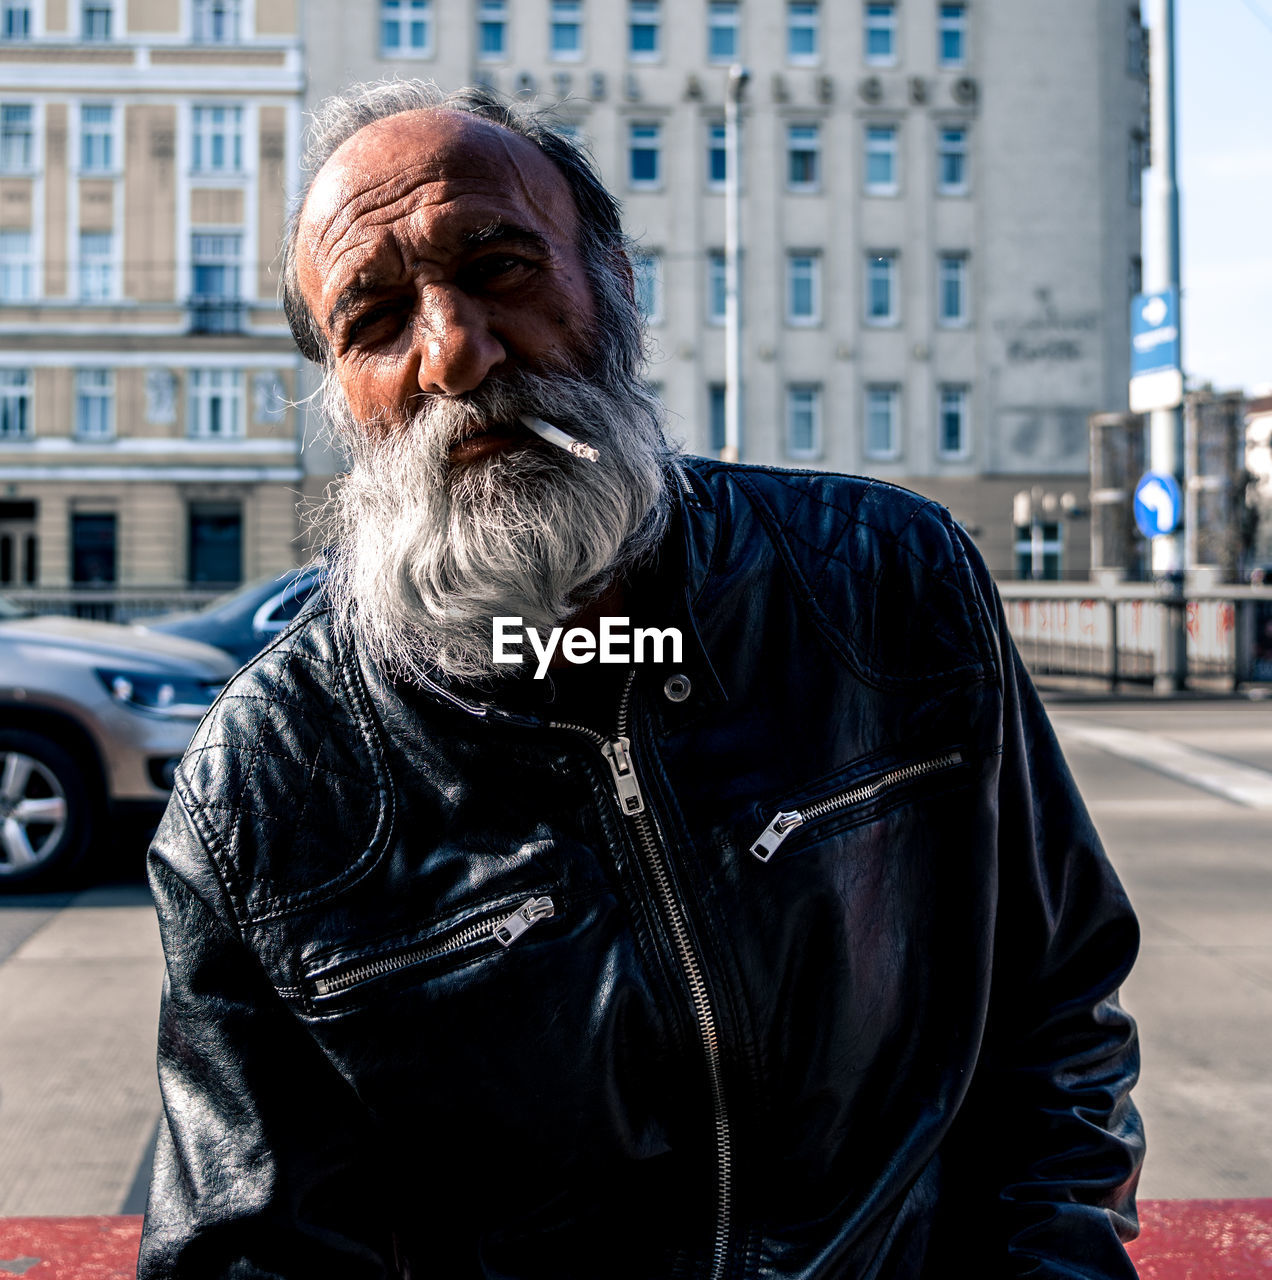 senior adult, city, one person, facial hair, beard, real people, architecture, lifestyles, portrait, males, men, adult, senior men, looking at camera, waist up, day, city life, focus on foreground, jacket, white hair, outdoors, hairstyle